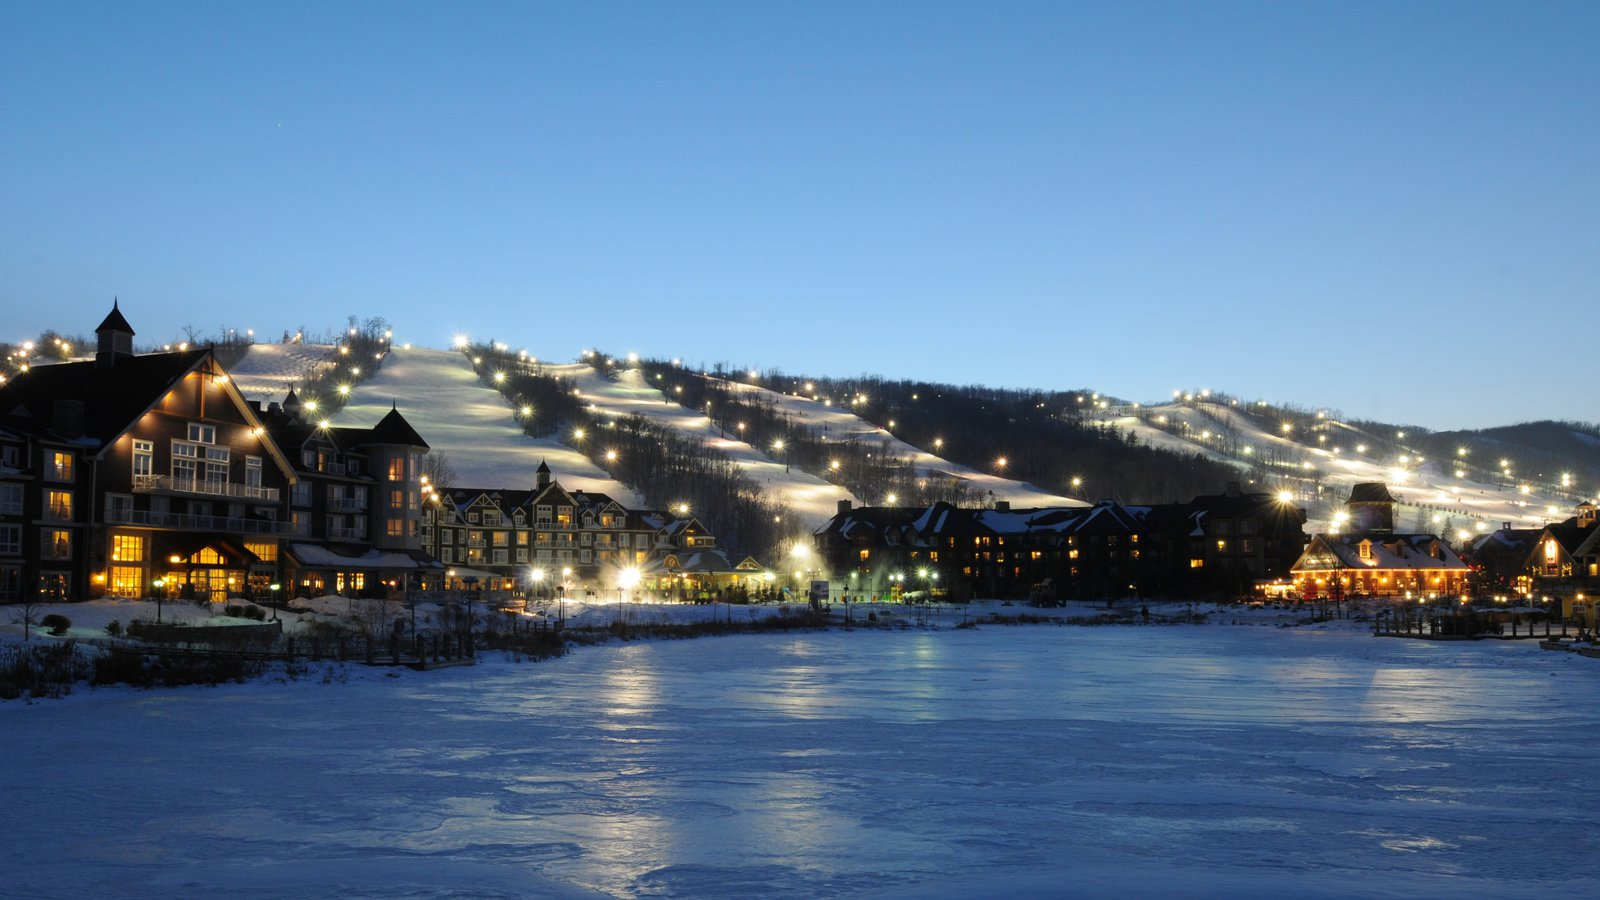 blue mountain ski resort pictures: view photos & images of blue